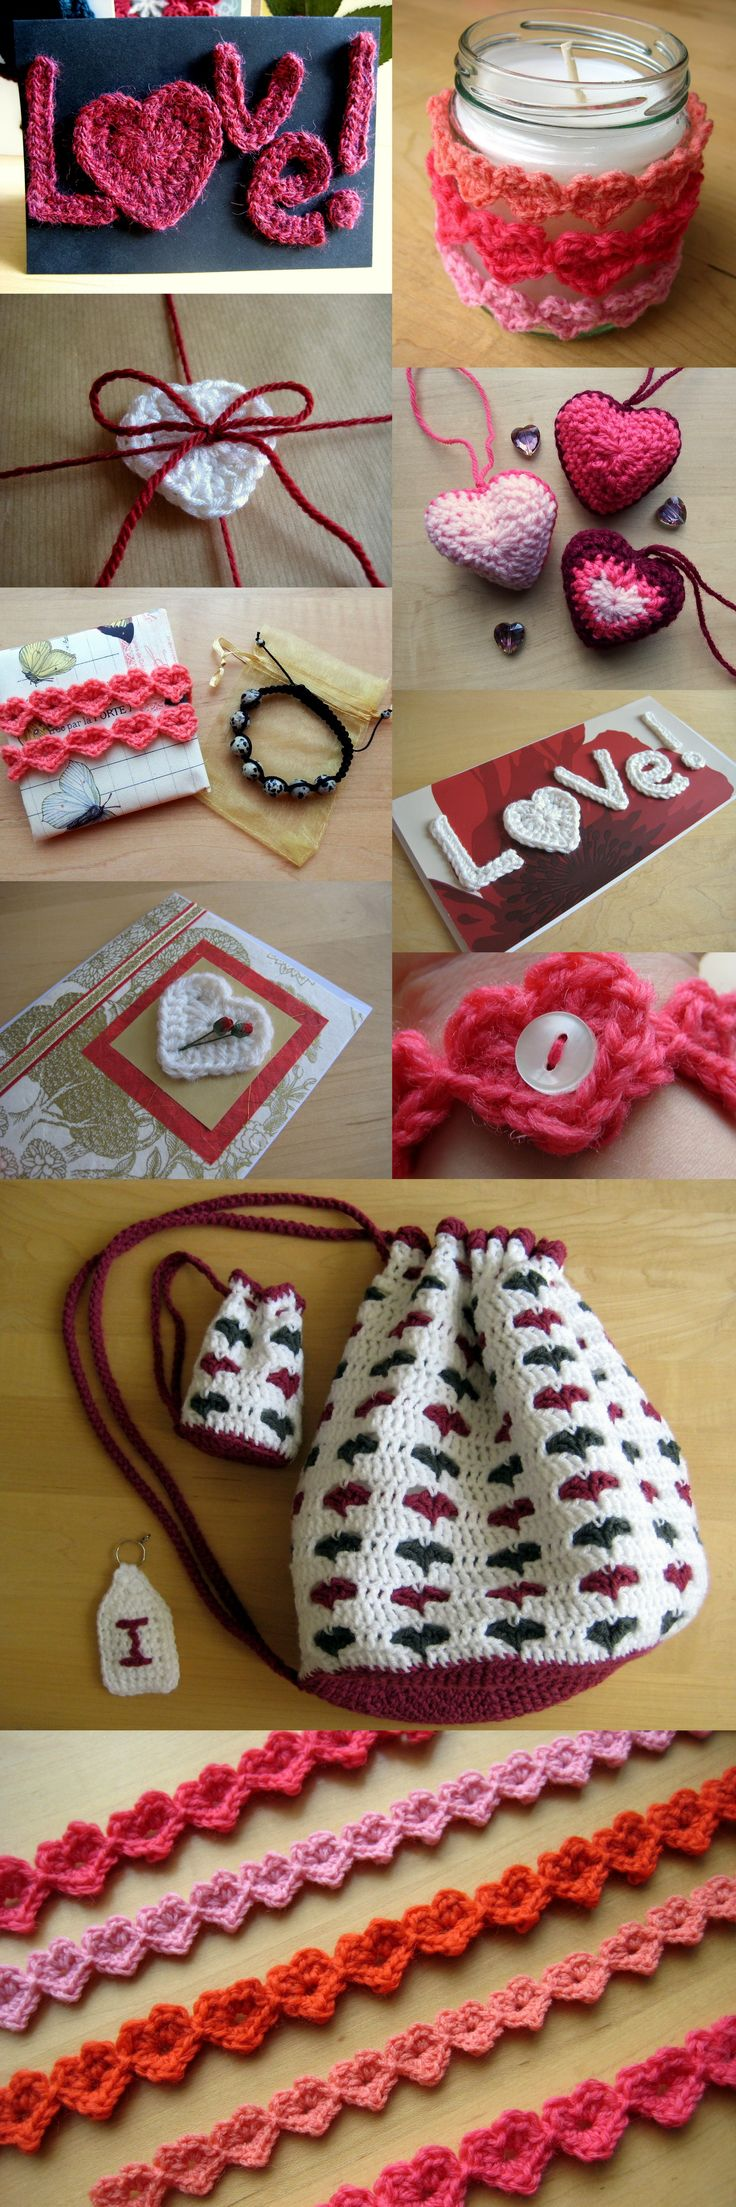 Love Hearts - Free Crochet Patterns from Make My Day Creative - just in time for Valentine's Day!